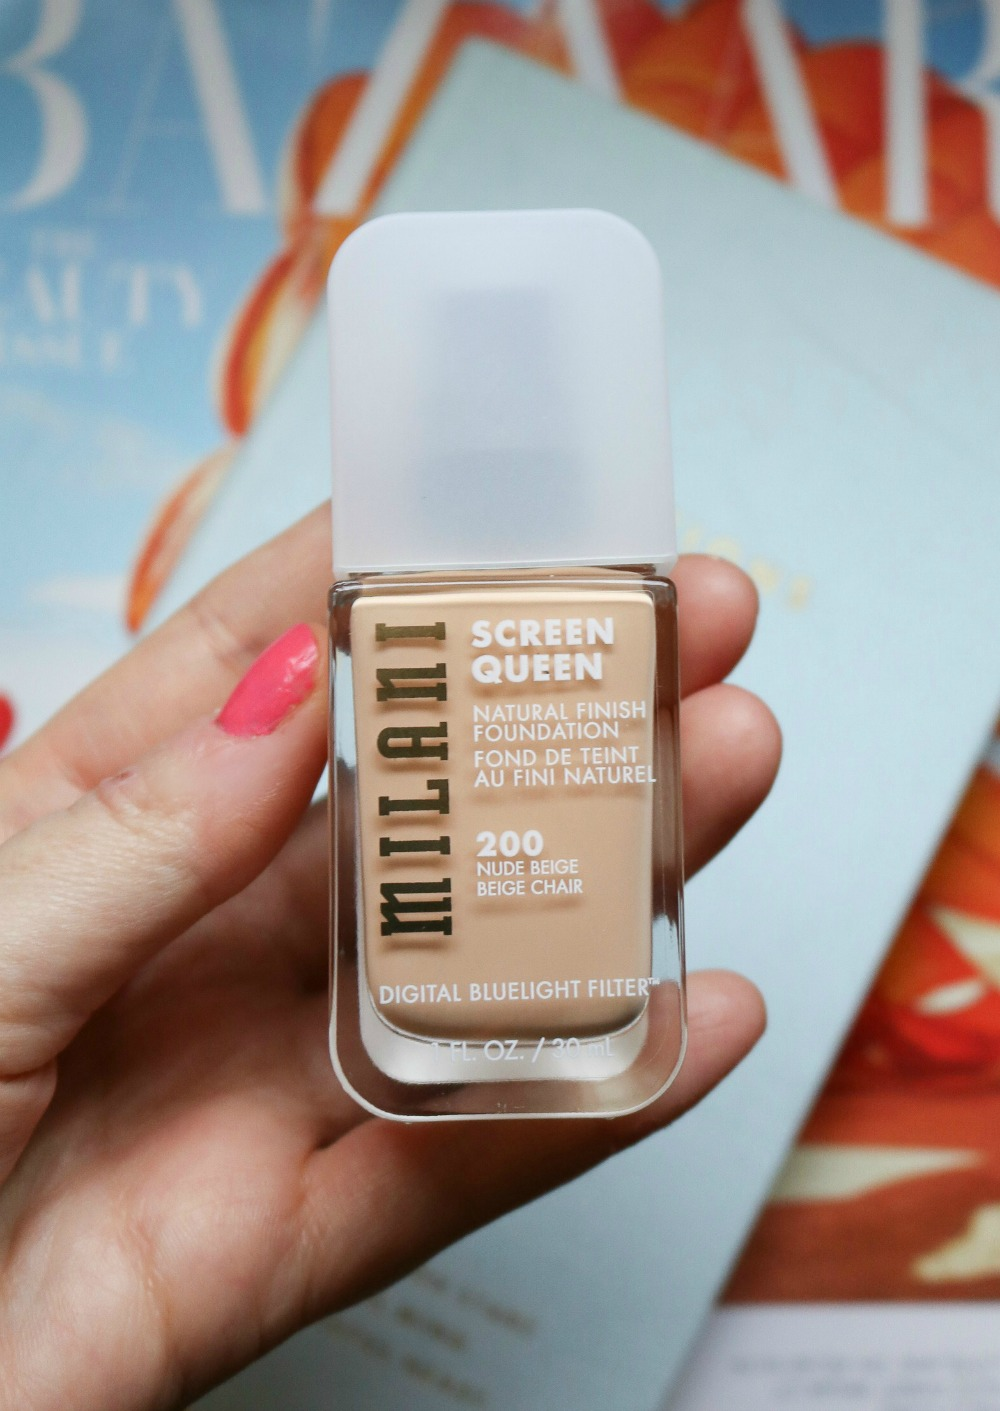 Milani Screen Queen Foundation Review I DreaminLace.com